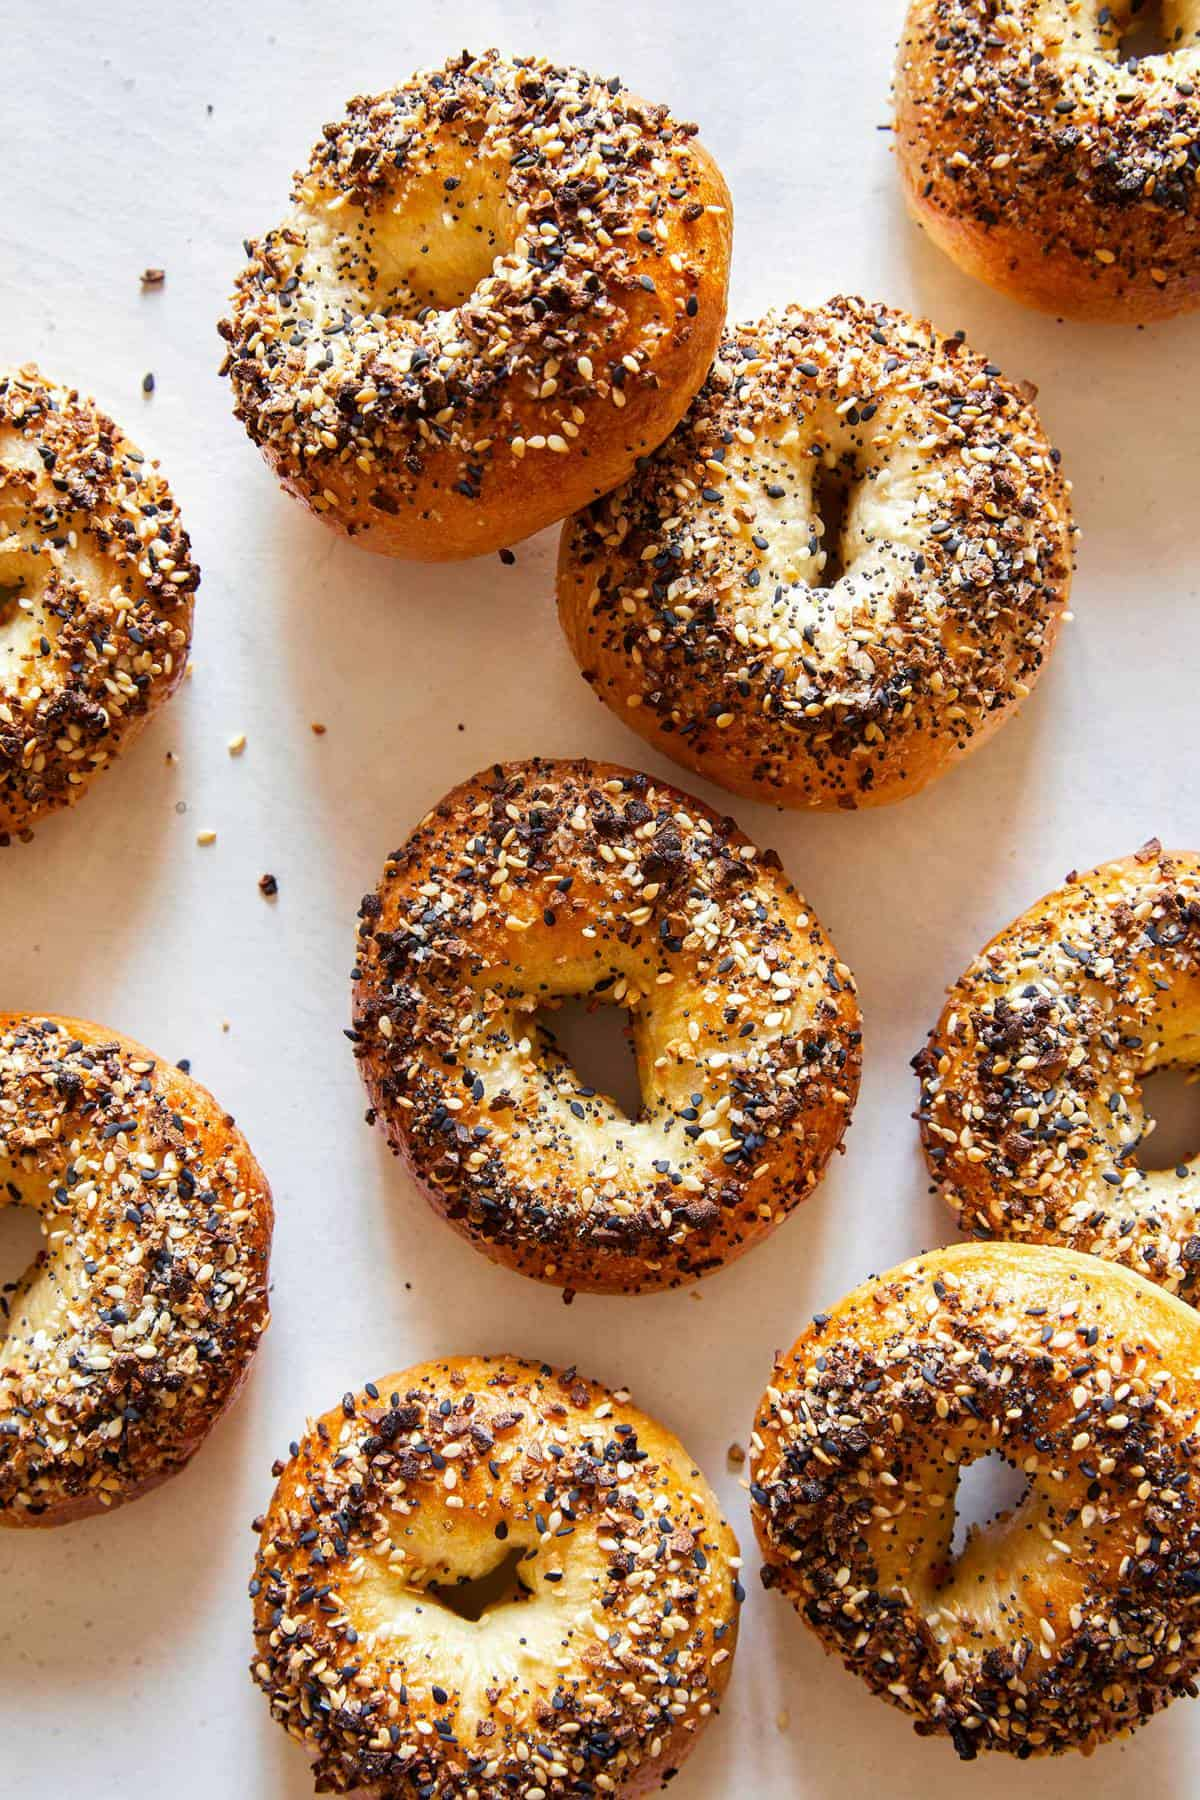 Several everything bagels.